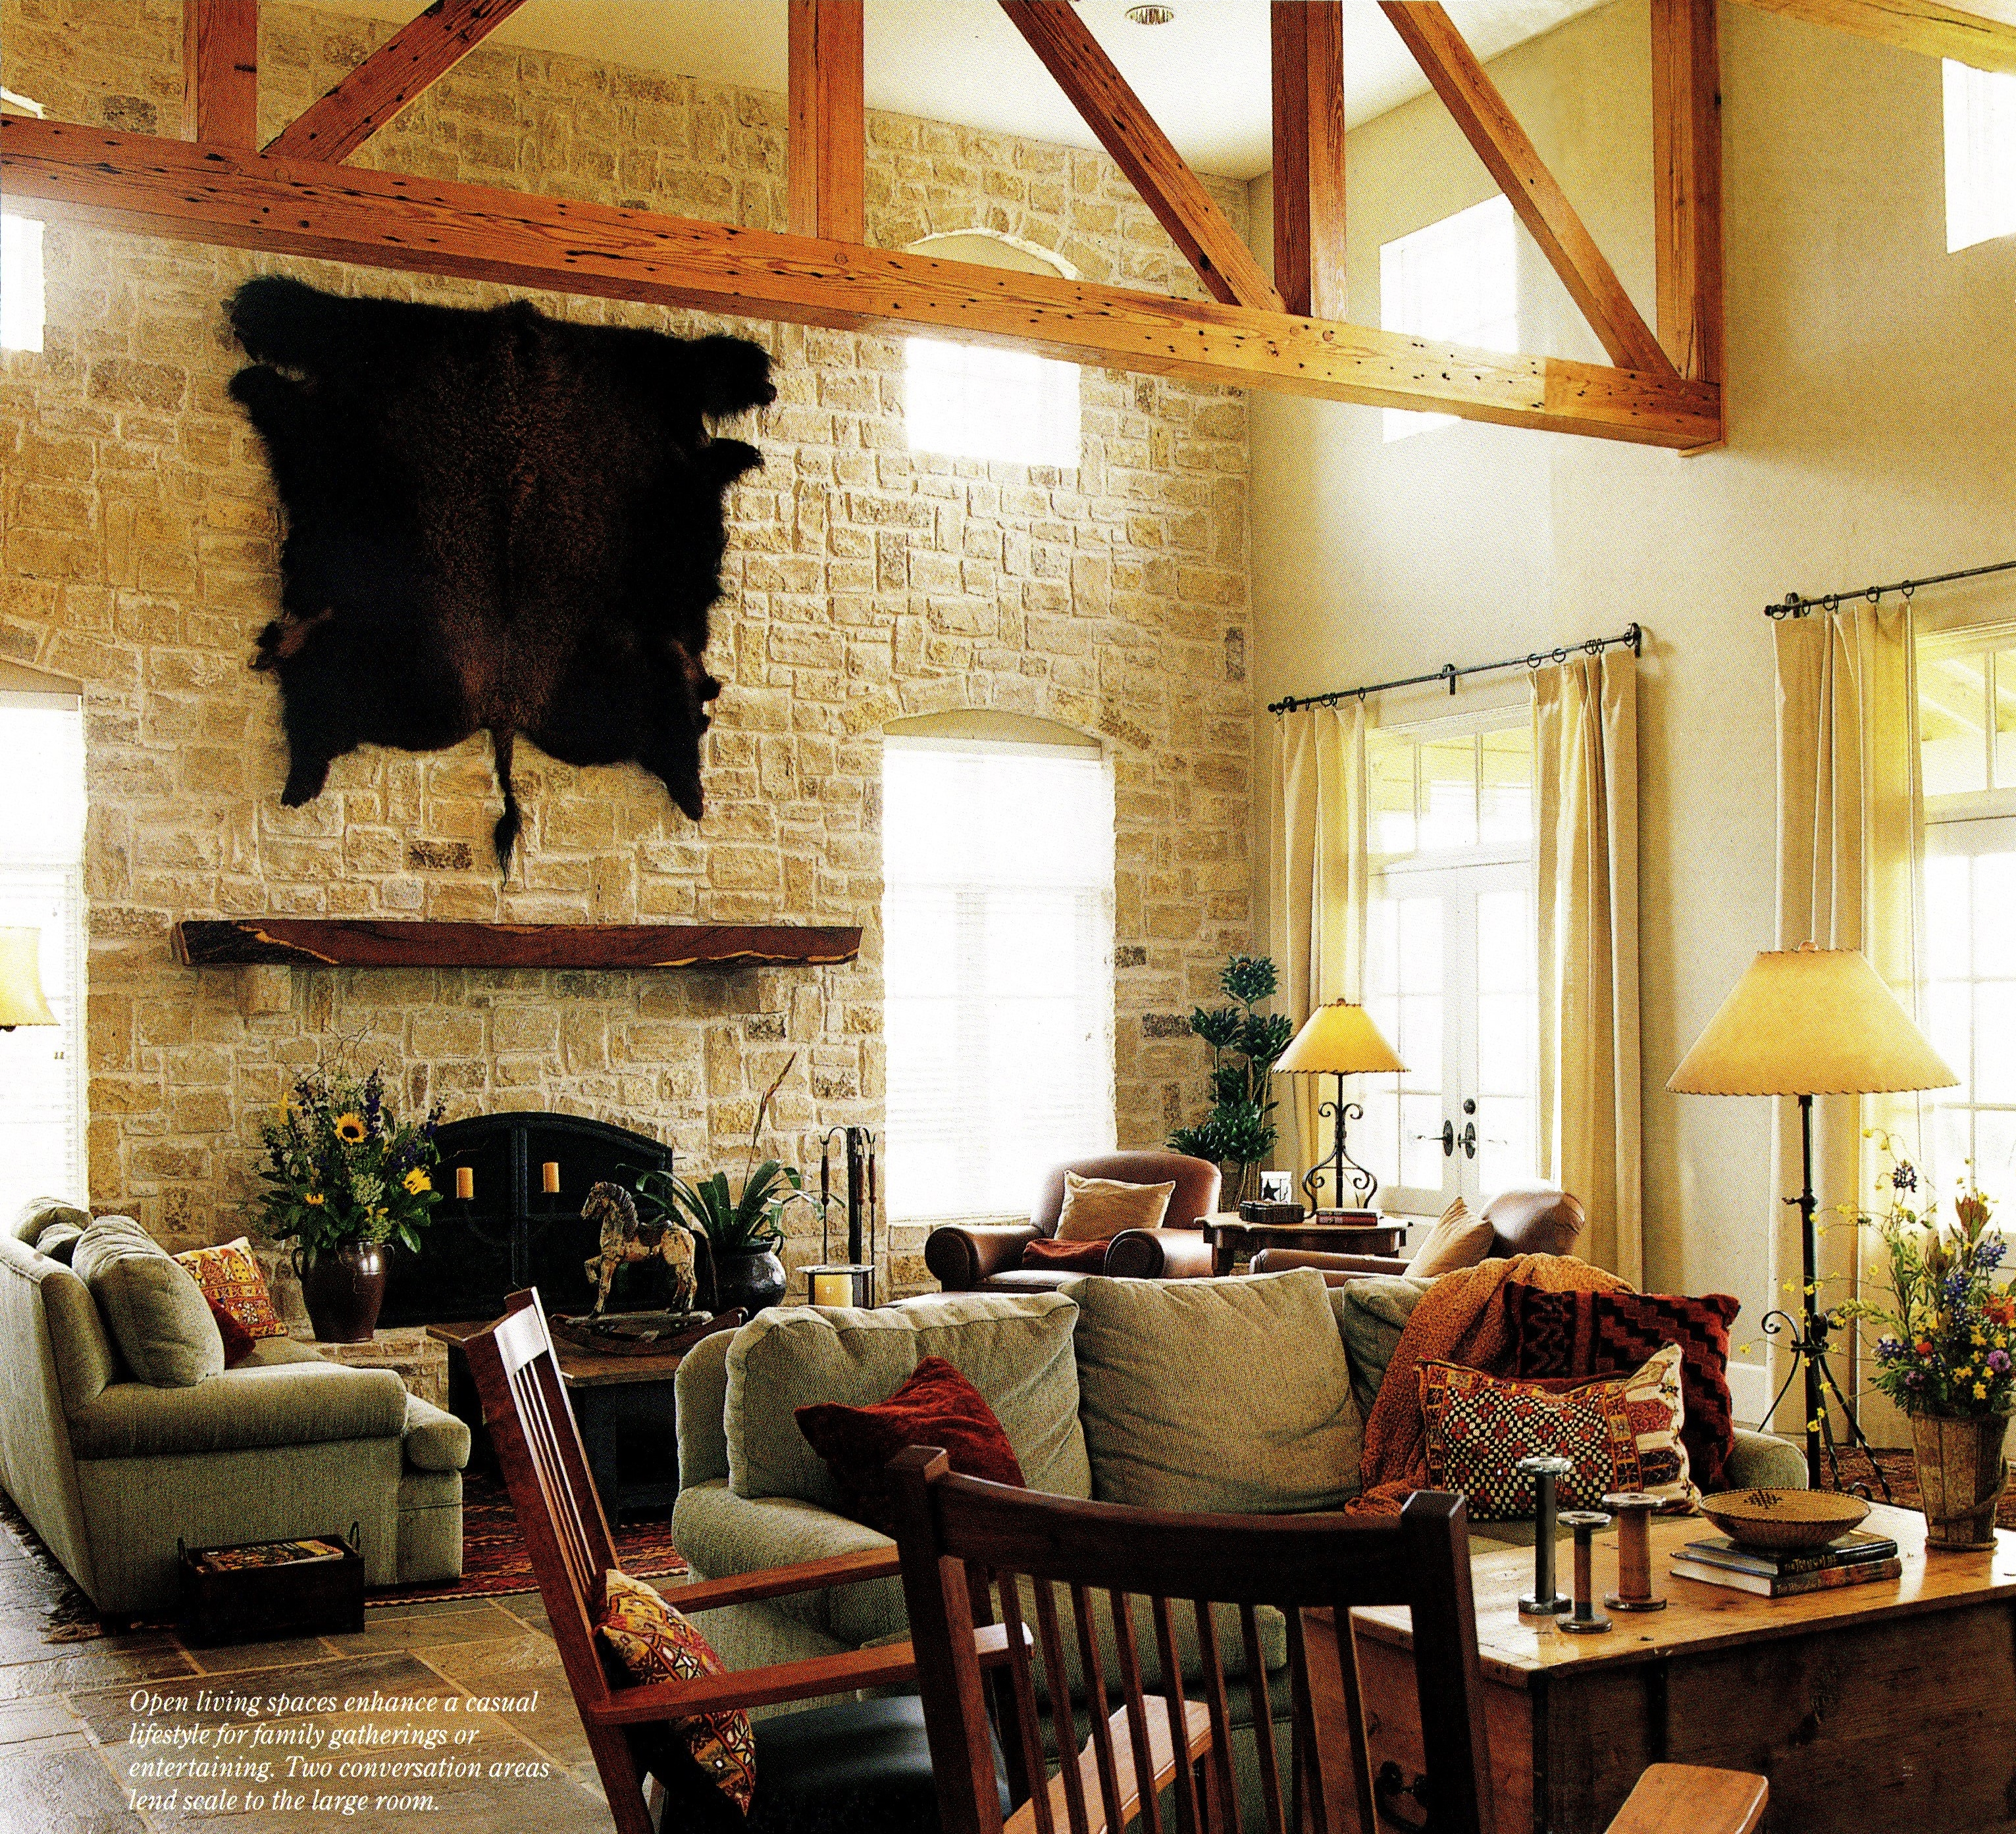 Ranch Home Design, Rustic. Texas, Colorado, Oklahoma Architect, Architects, Architecture firm, firms, company, companies.